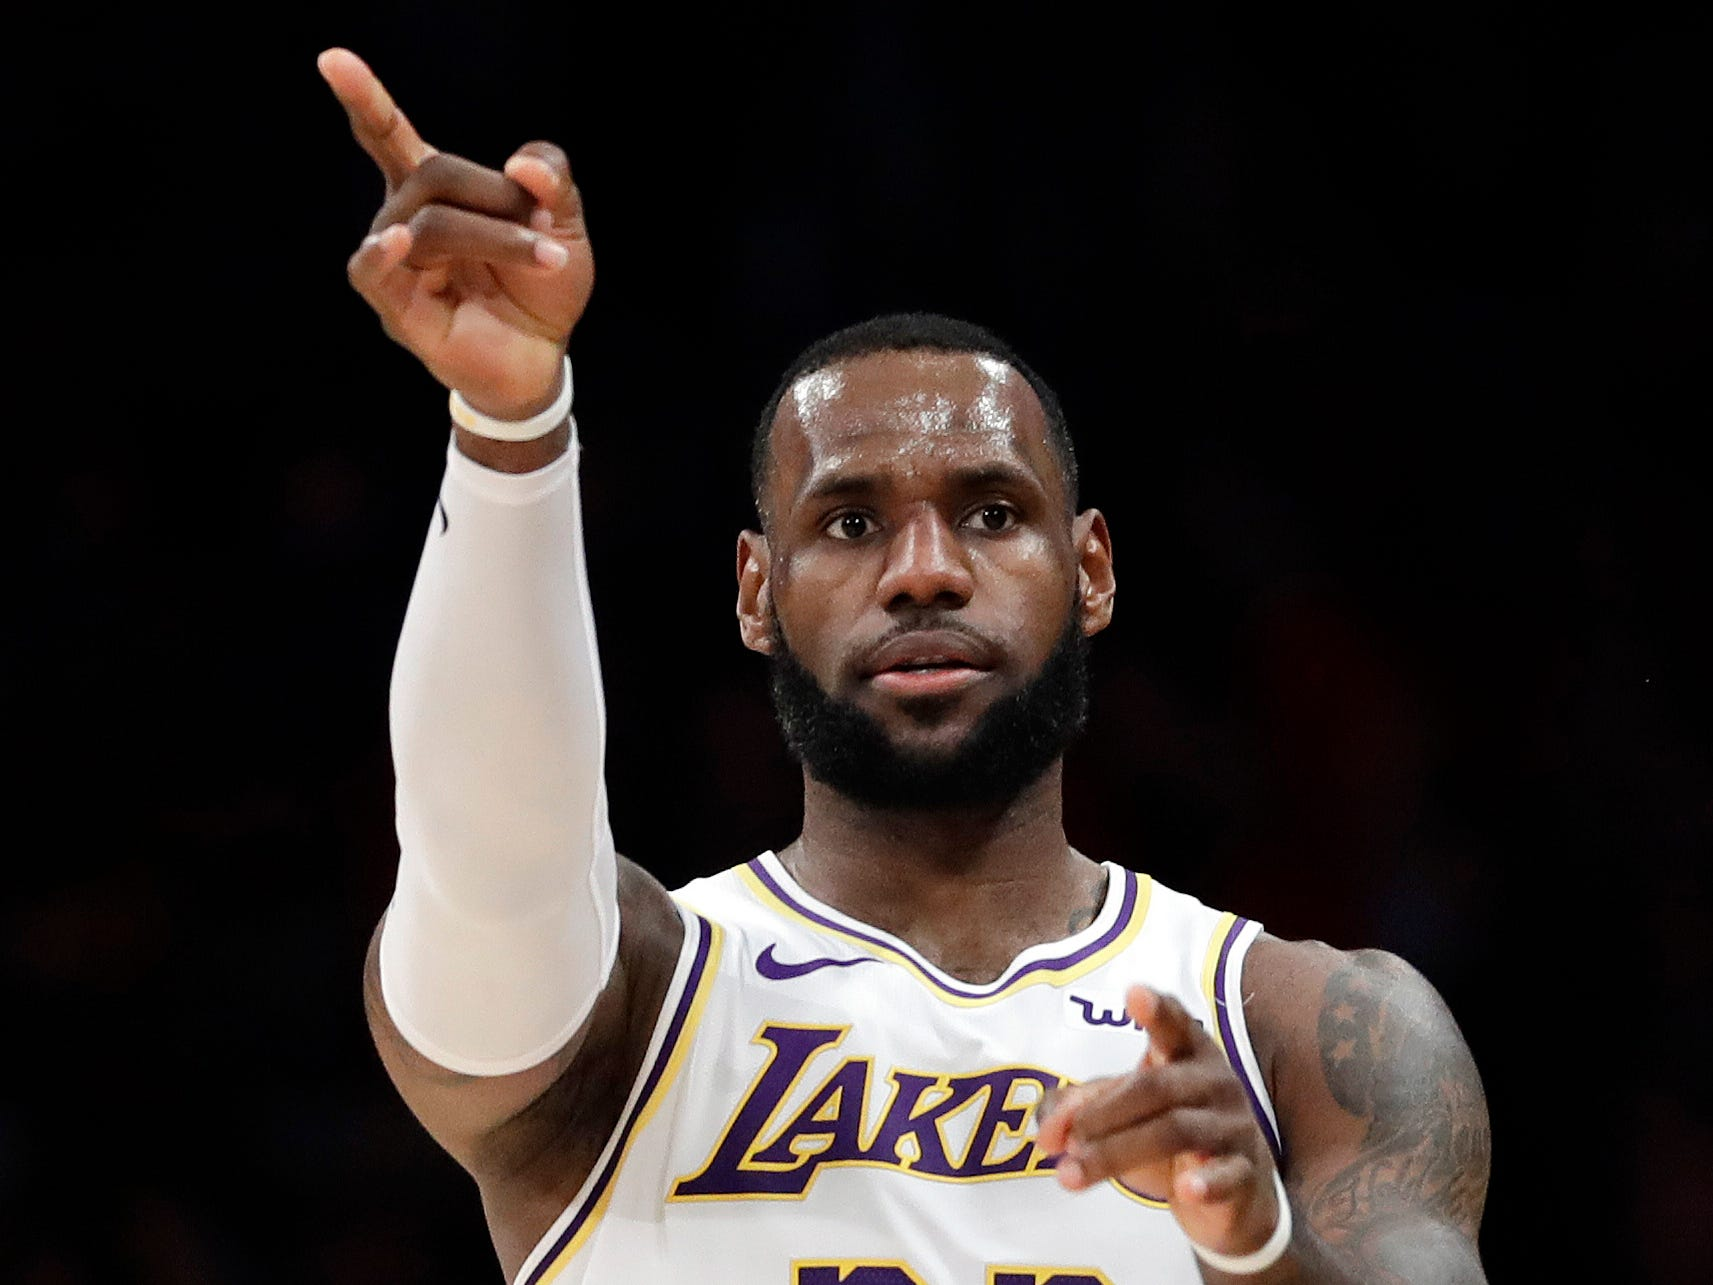 Los Angeles Lakers' LeBron James (23) gestures after scoring against the Phoenix Suns during the first half of an NBA basketball game Sunday, Dec. 2, 2018, in Los Angeles. (AP Photo/Marcio Jose Sanchez)